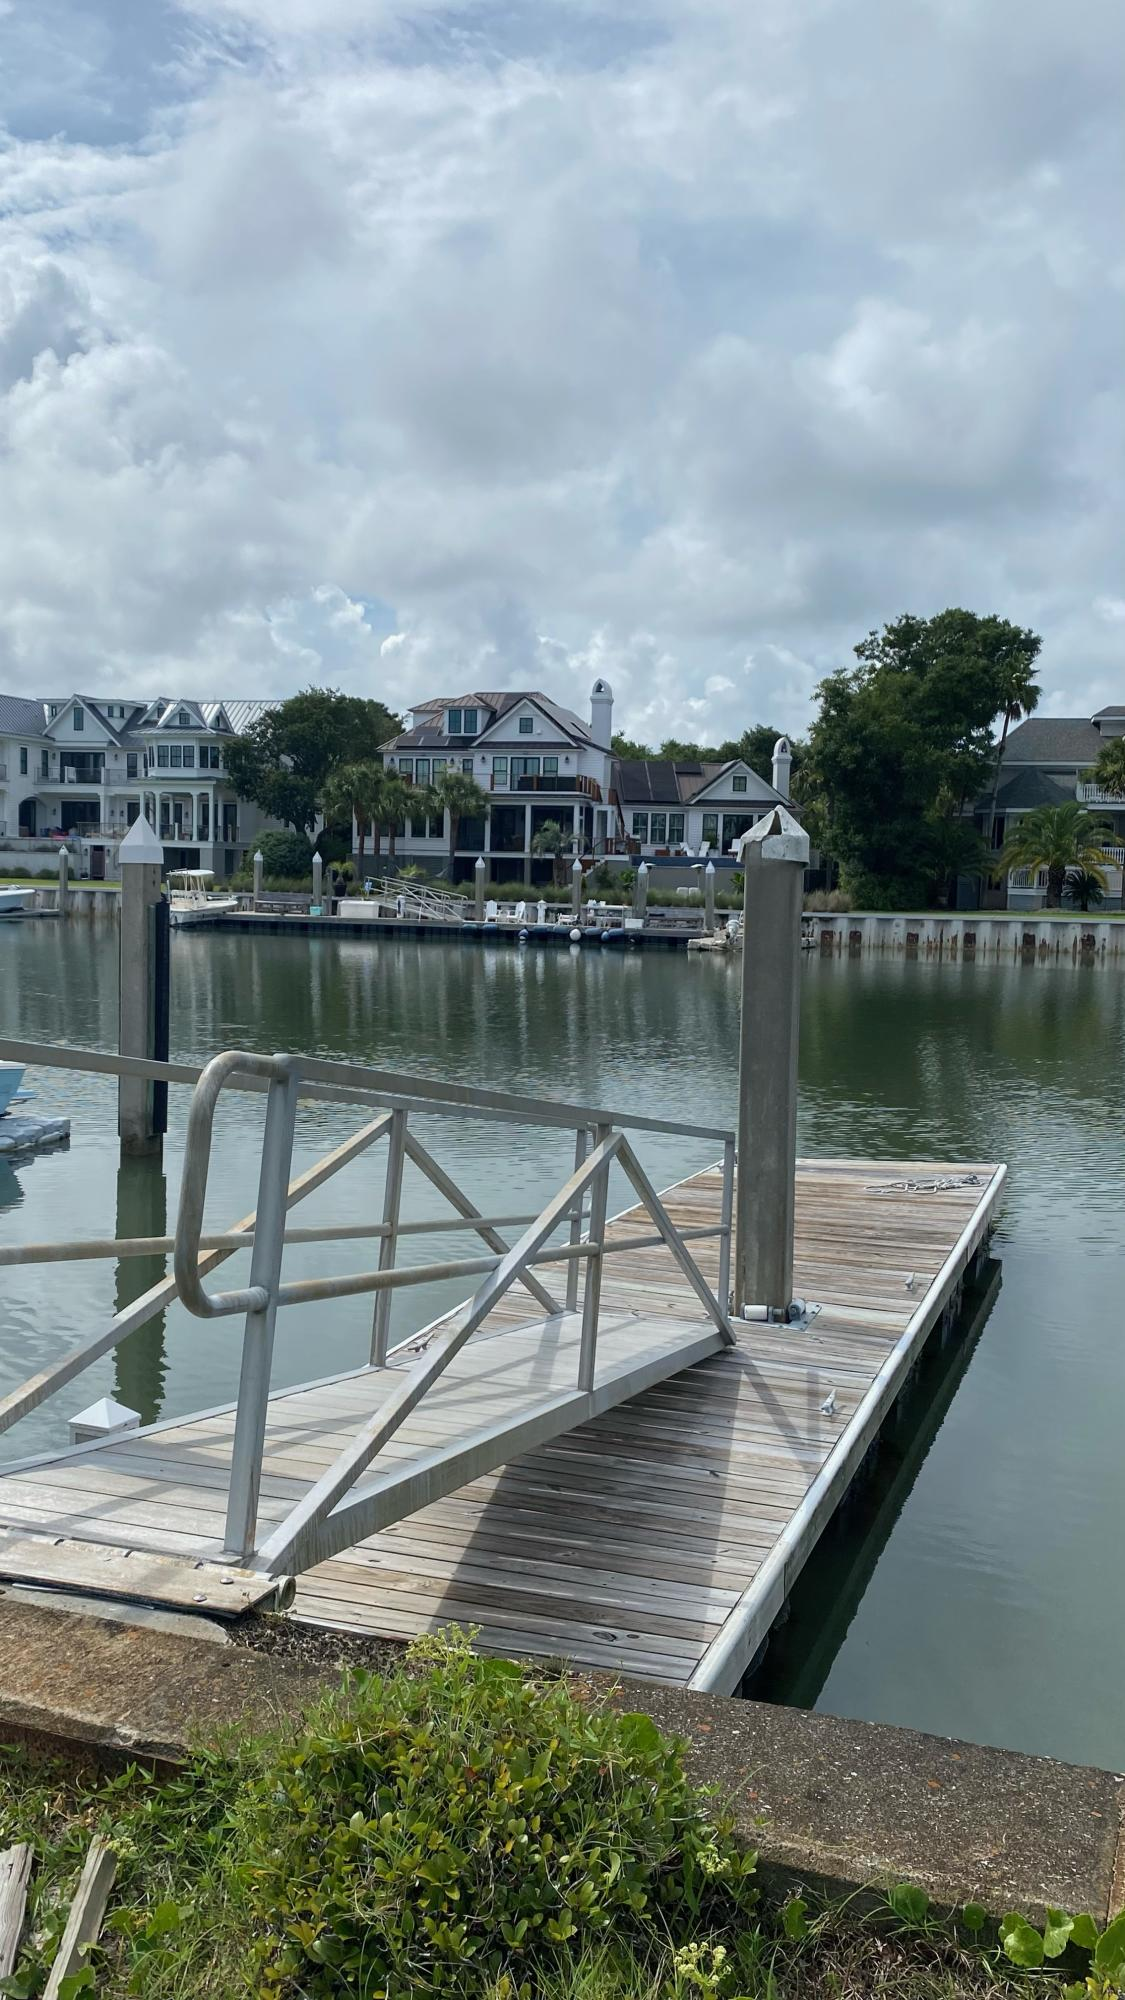 Wild Dunes Homes For Sale - 34 Morgan Pl, Isle of Palms, SC - 0